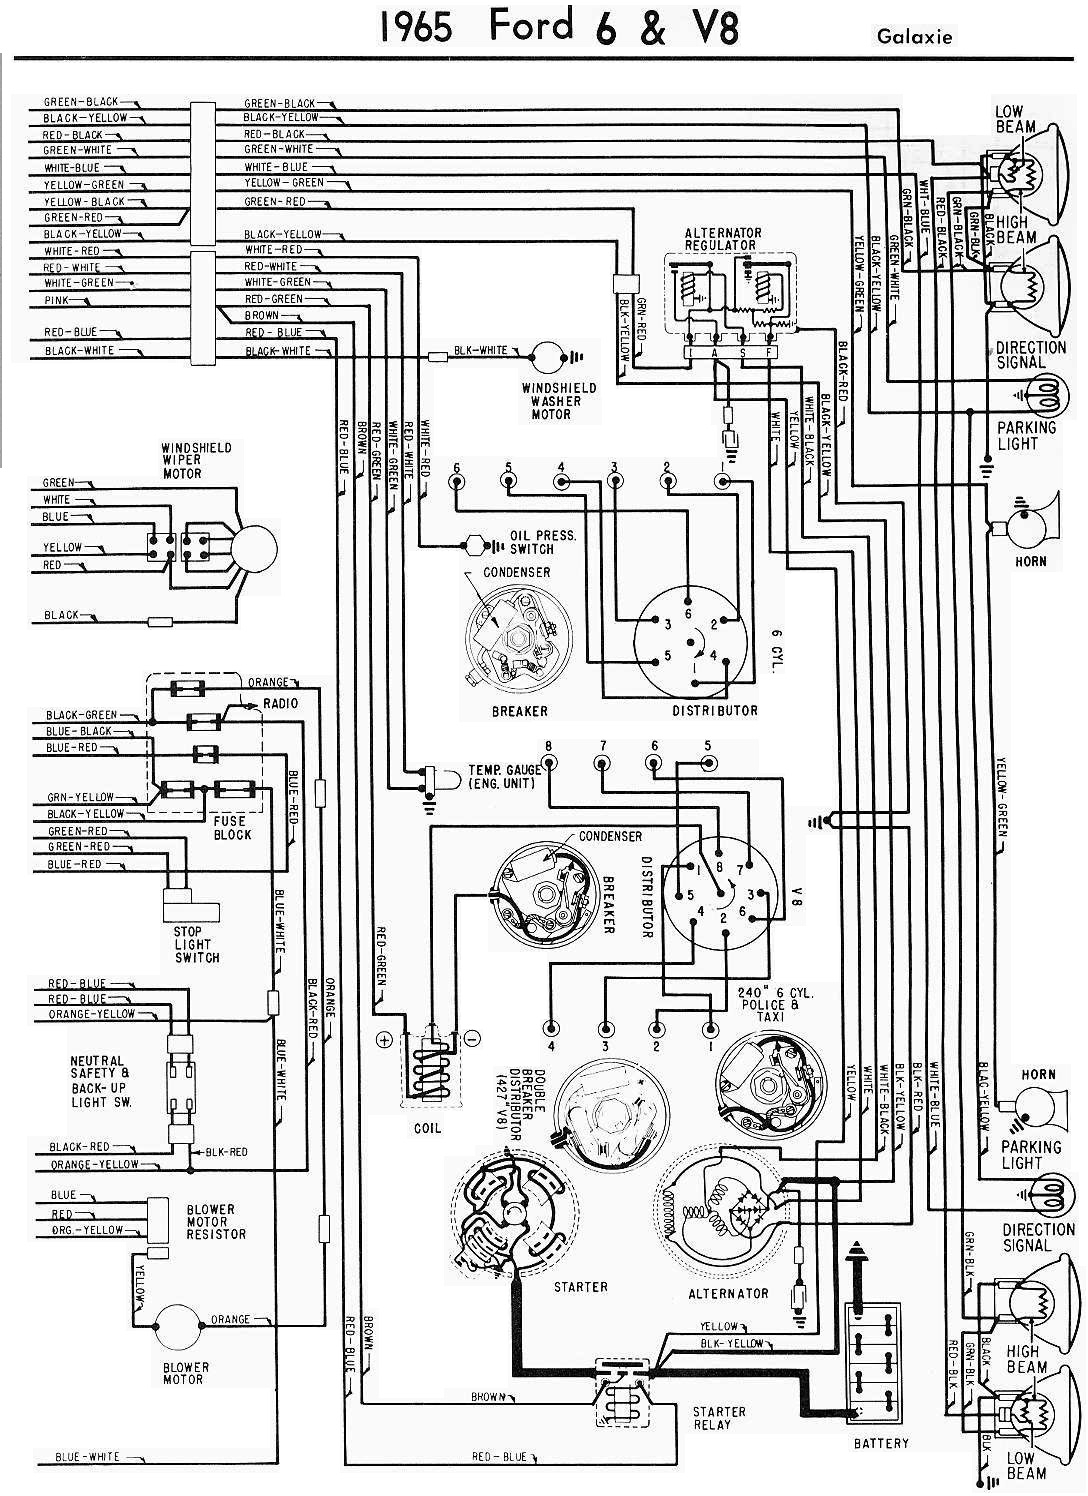 Elec Wiring Diagram : Ford galaxie complete electrical wiring diagram part